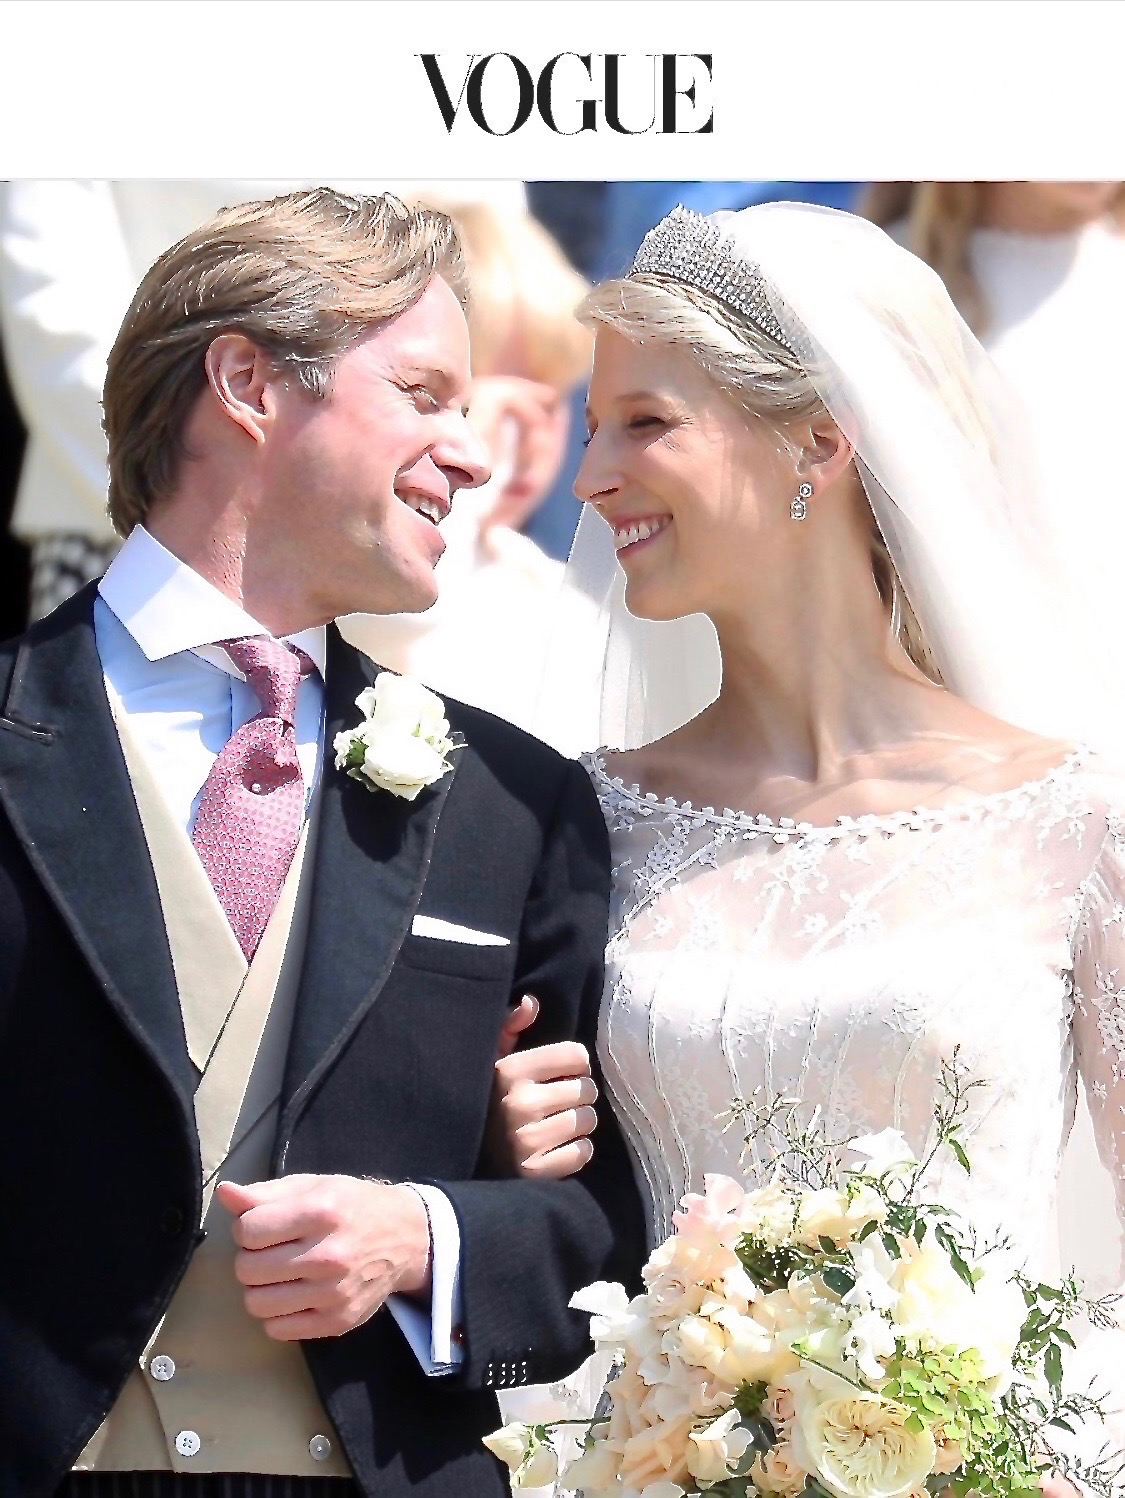 Vogue#Royal Wedding#May 2019#Lady Gabriella#Windsor